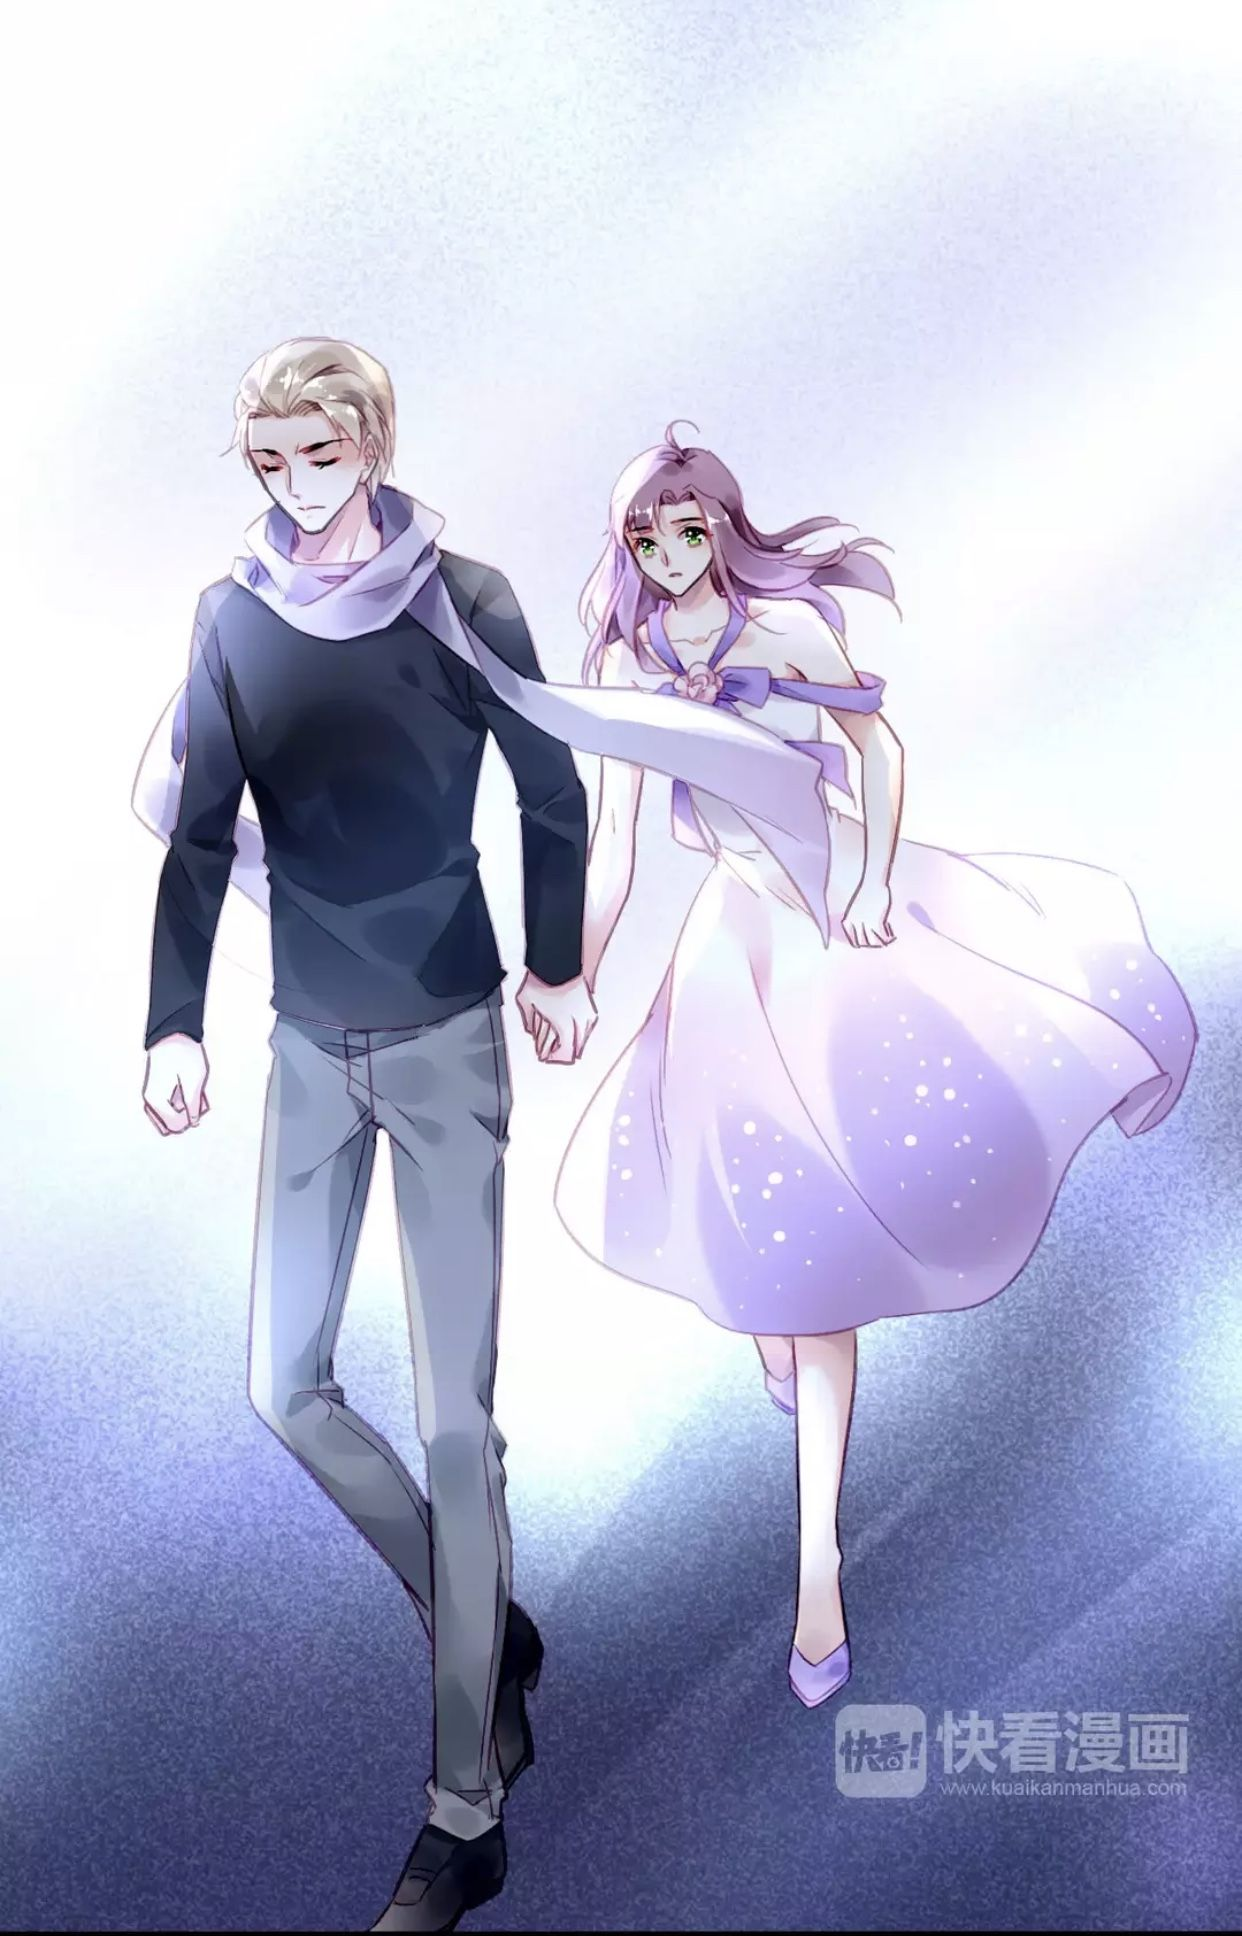 Pin by Nny on Comico Anime, Vocaloid, Art